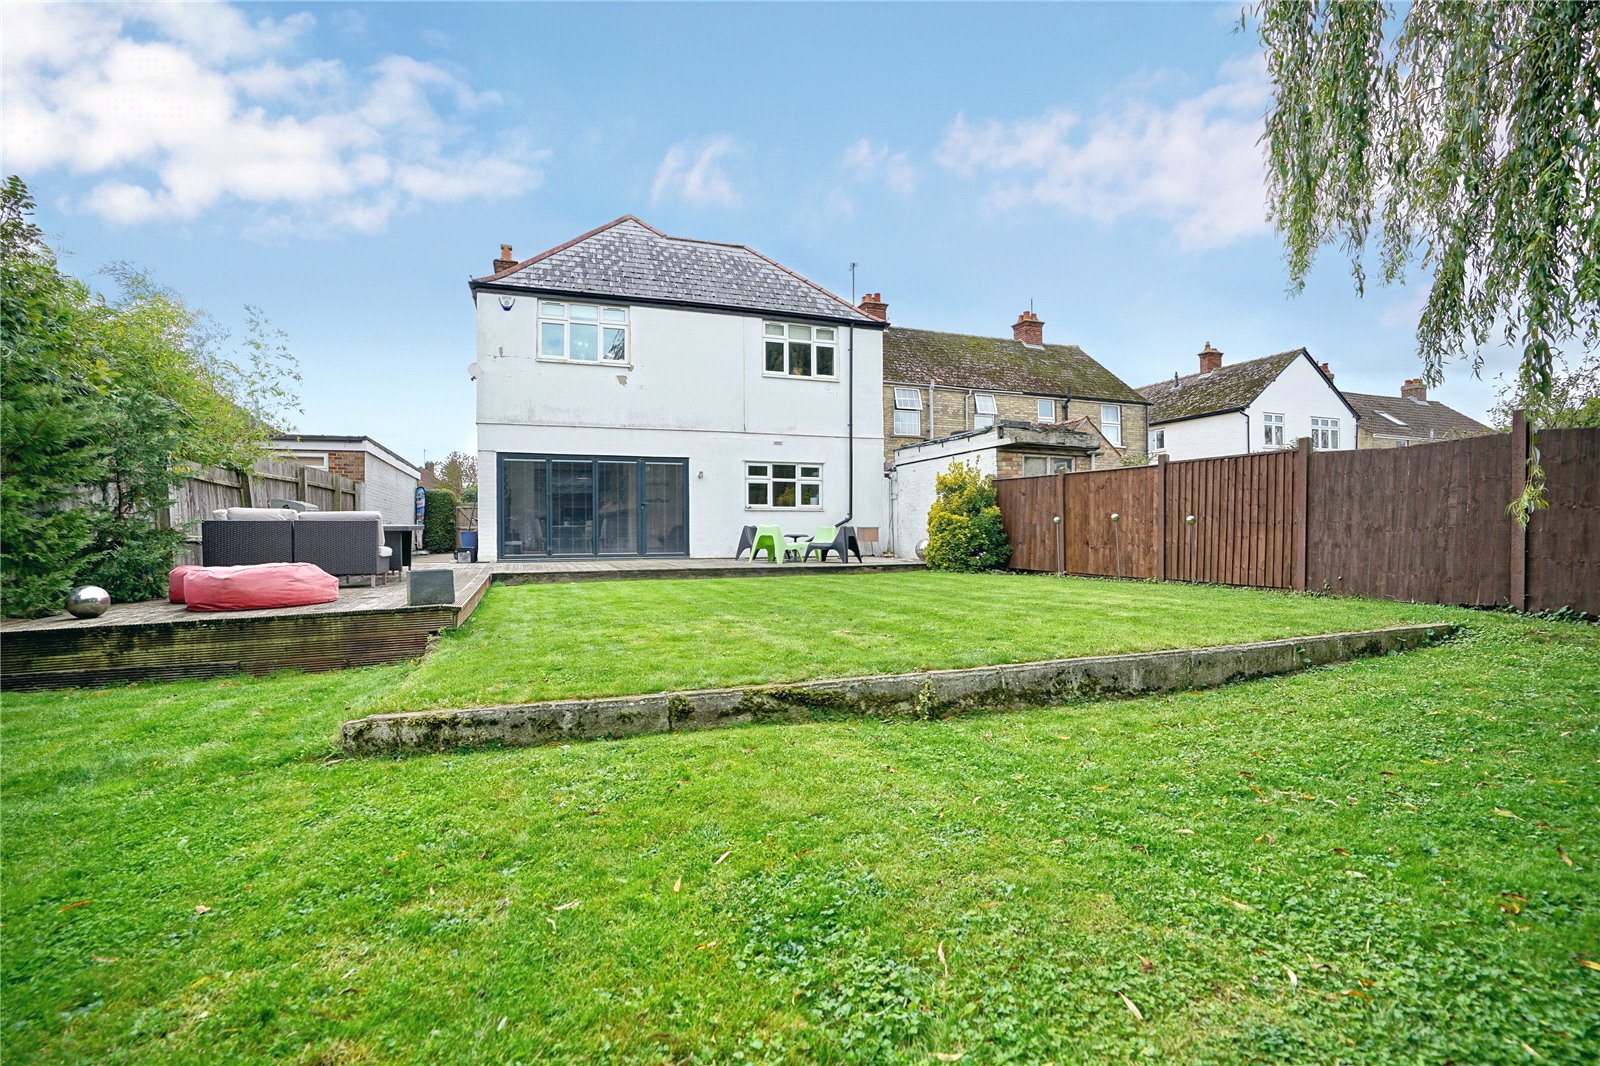 4 bed house for sale in St. Ives, PE27 3NG 0